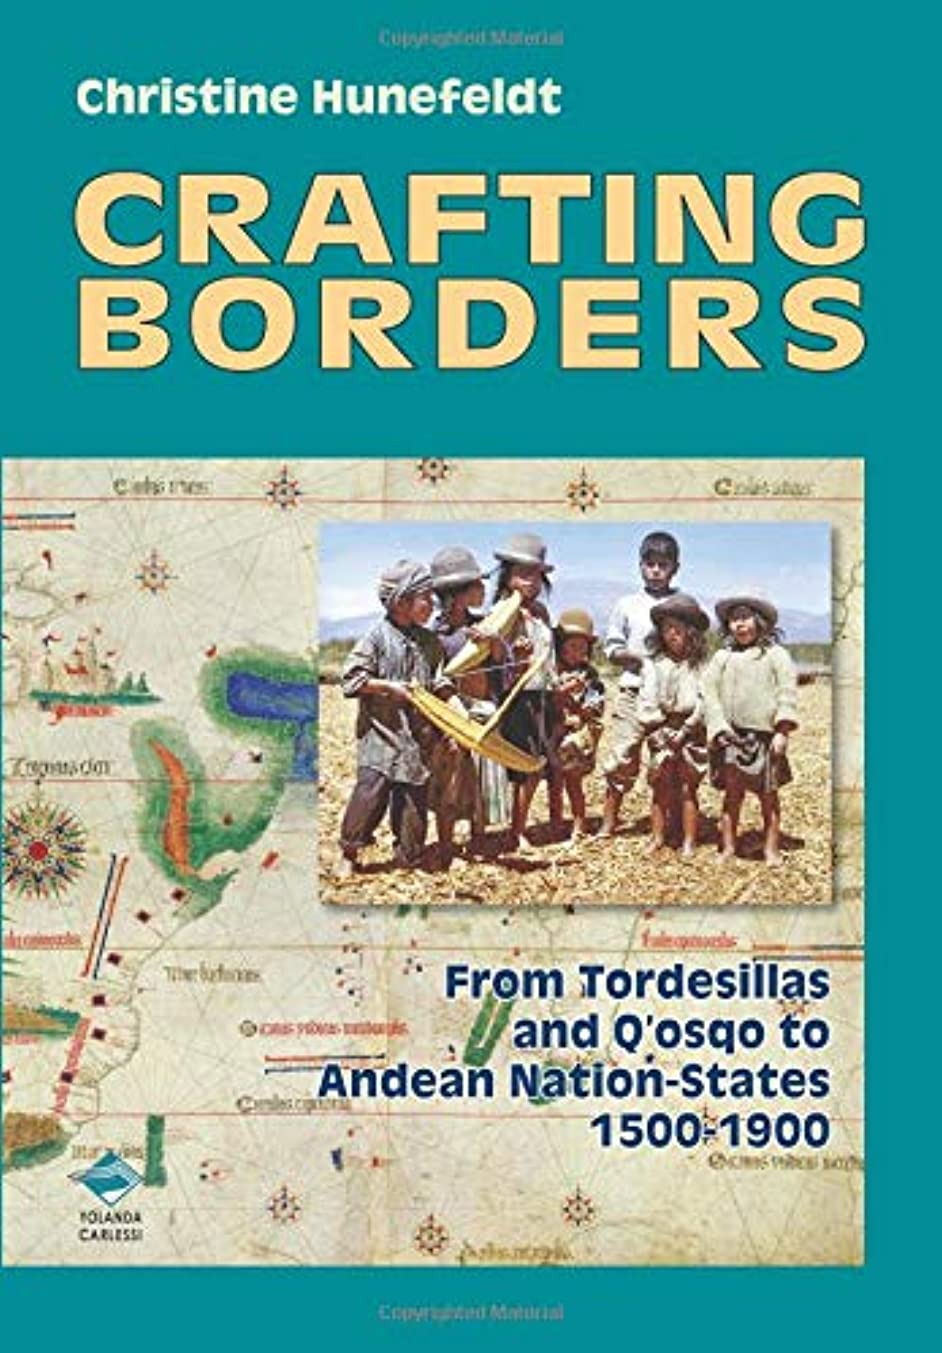 Crafting Borders: From Tordesillas and Q'osqo to Andean Nation-States.1500-1900.